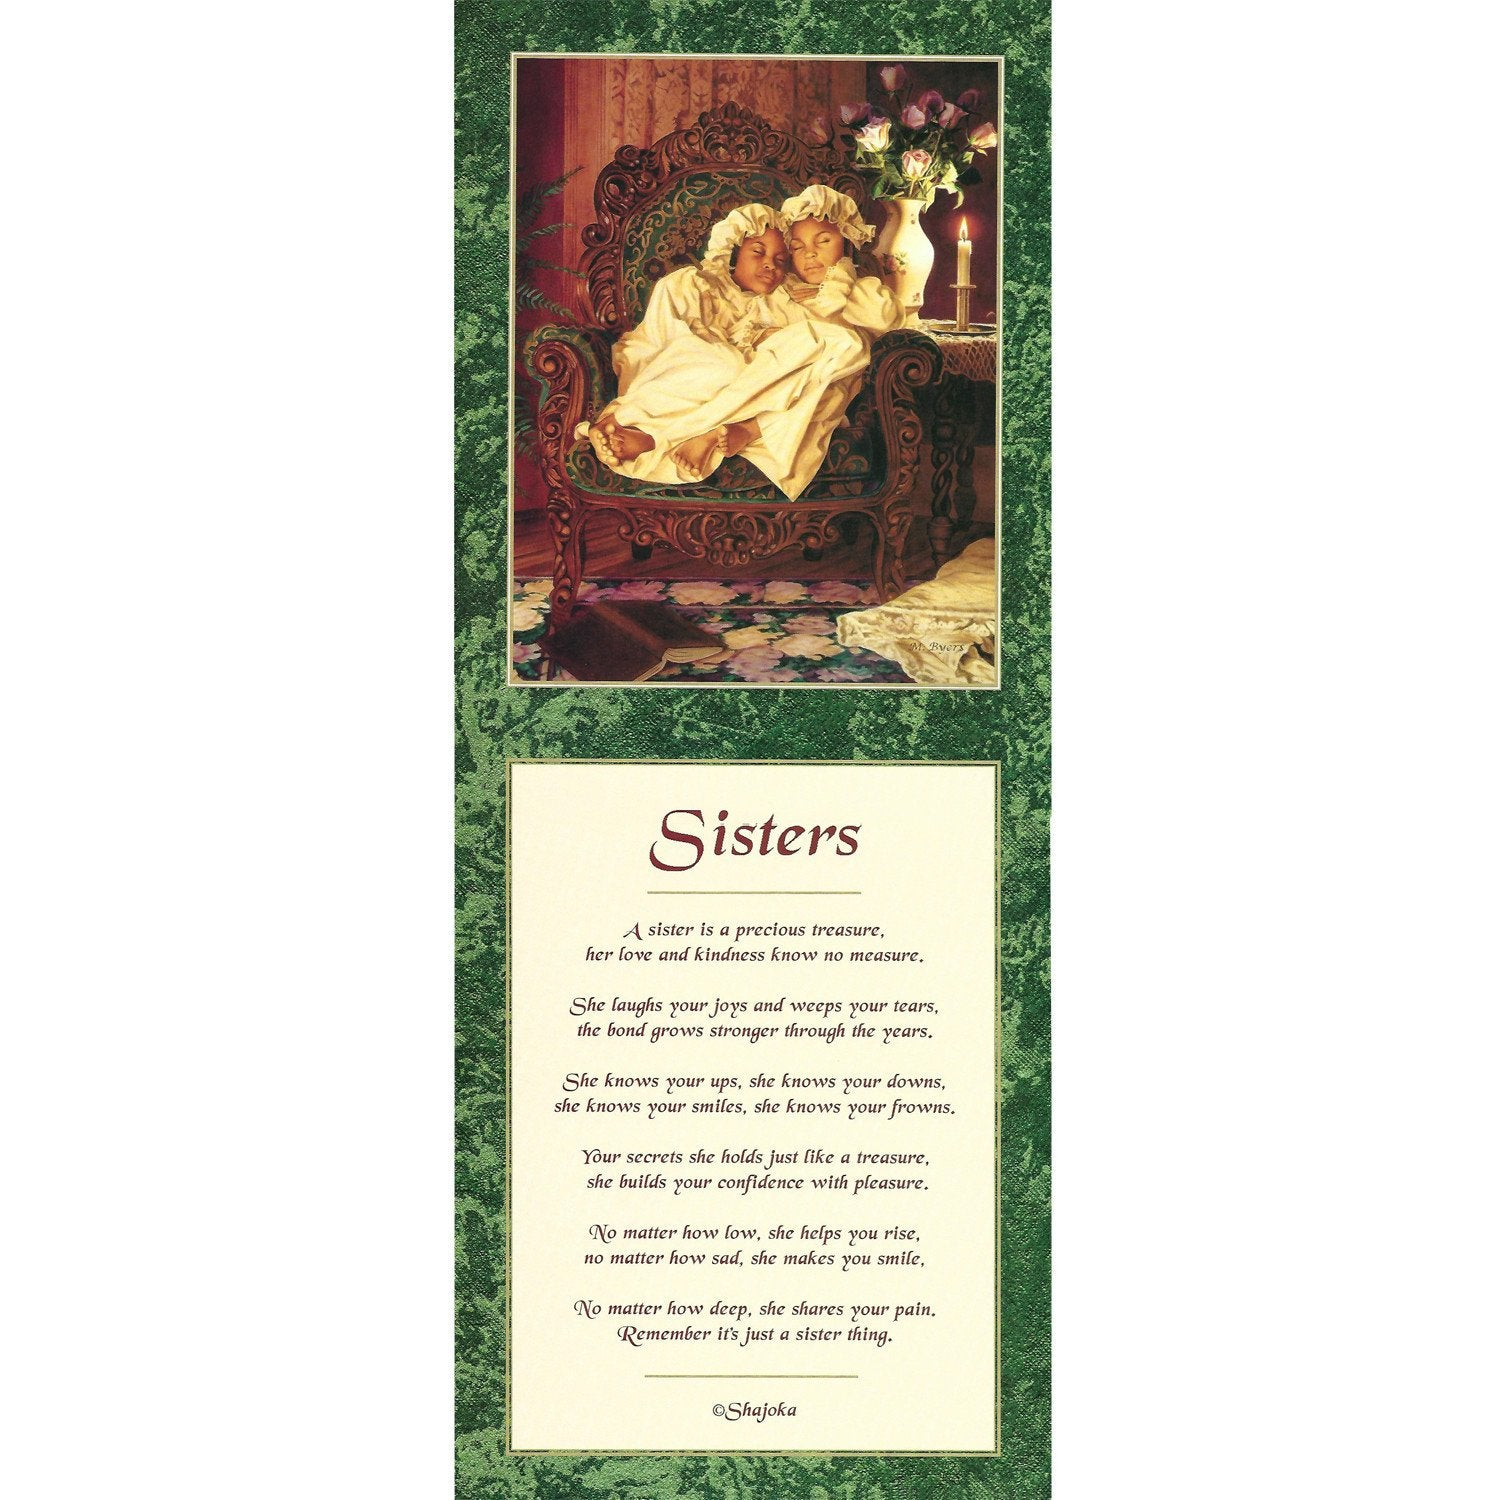 Sisters by Melinda Byers and Shahida (Literary Art Print)